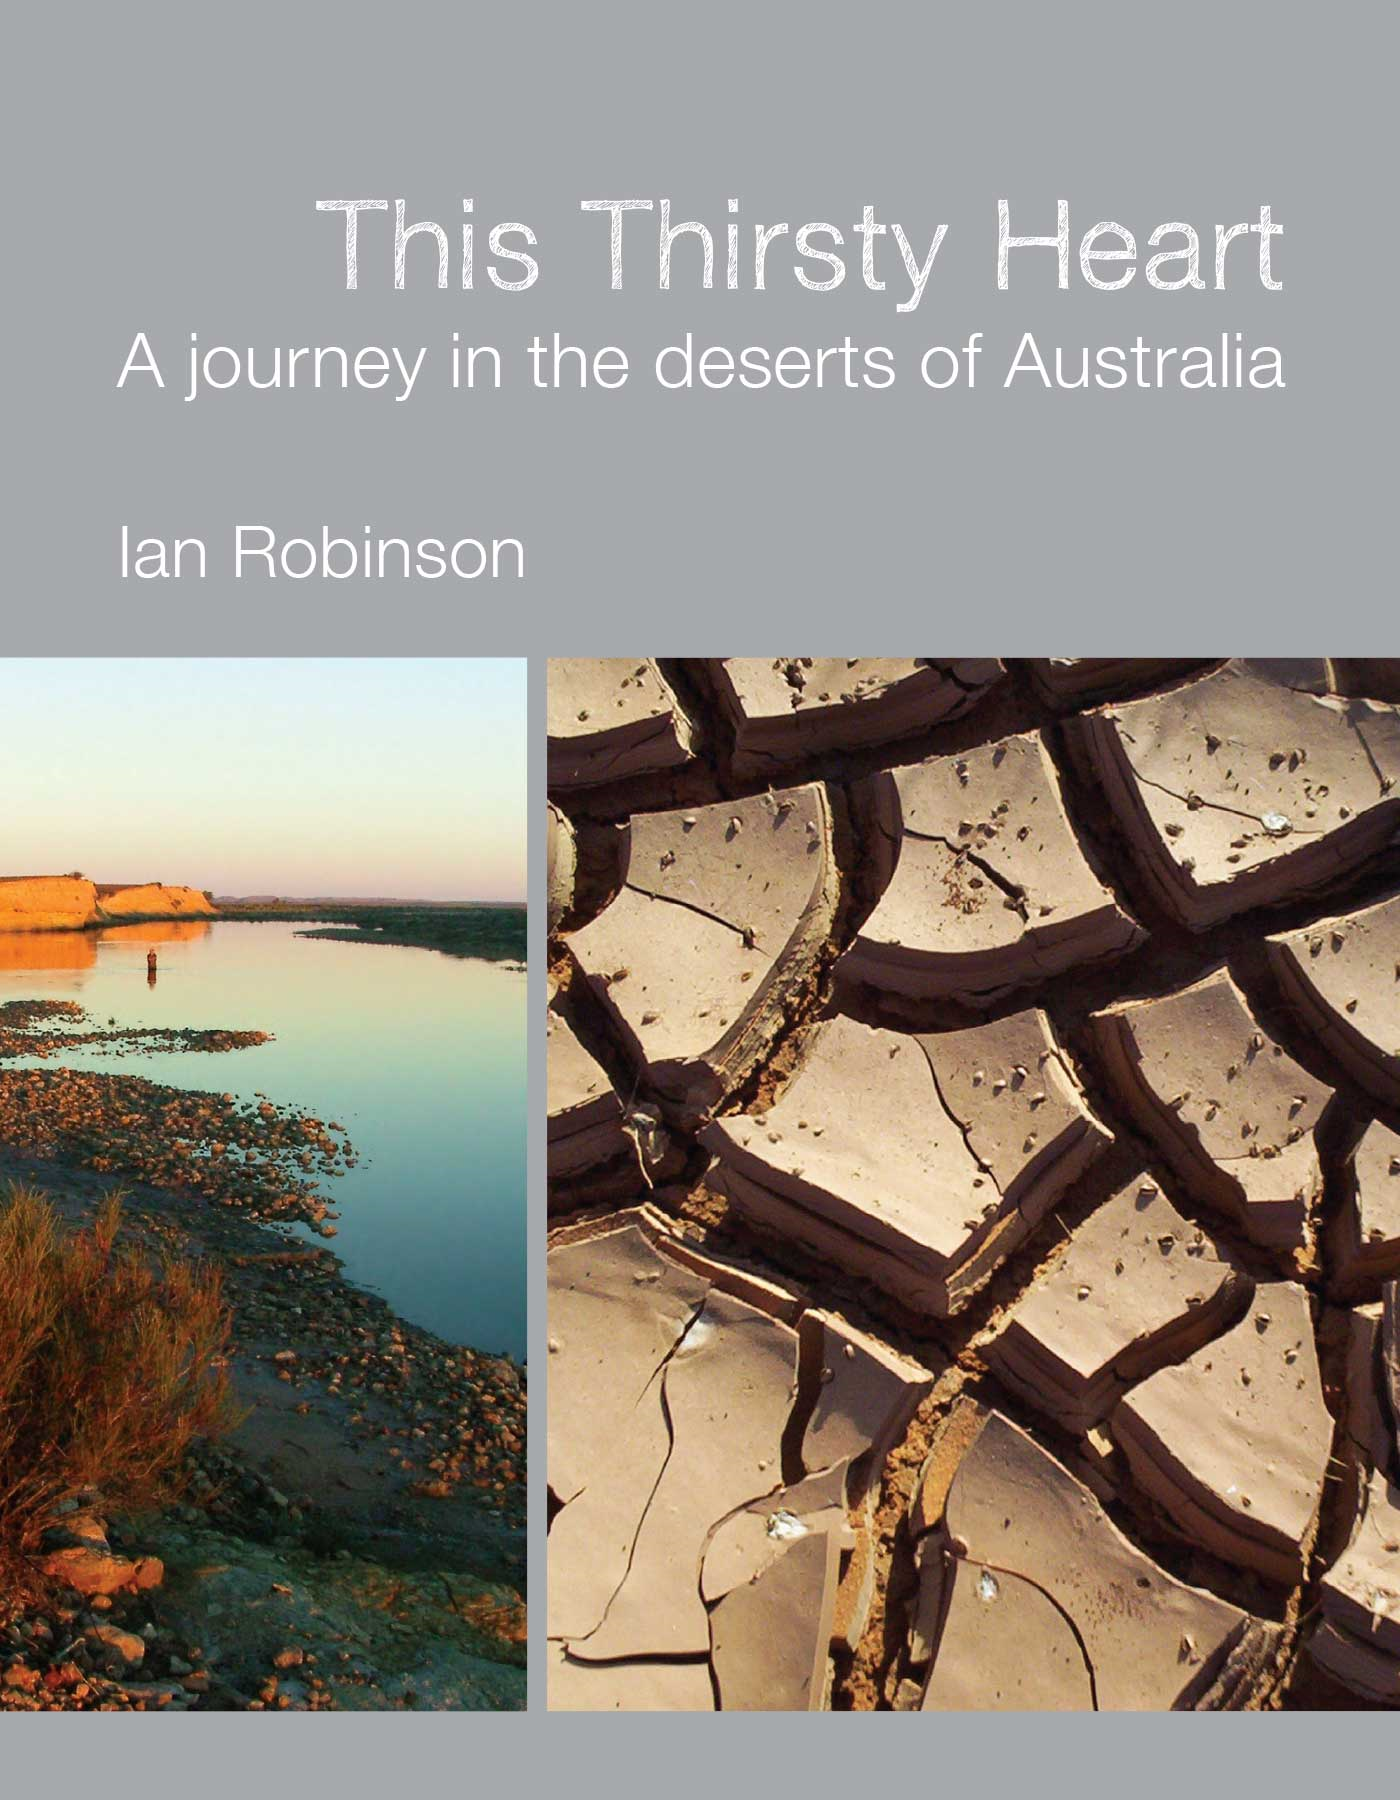 This Thirsty Heart